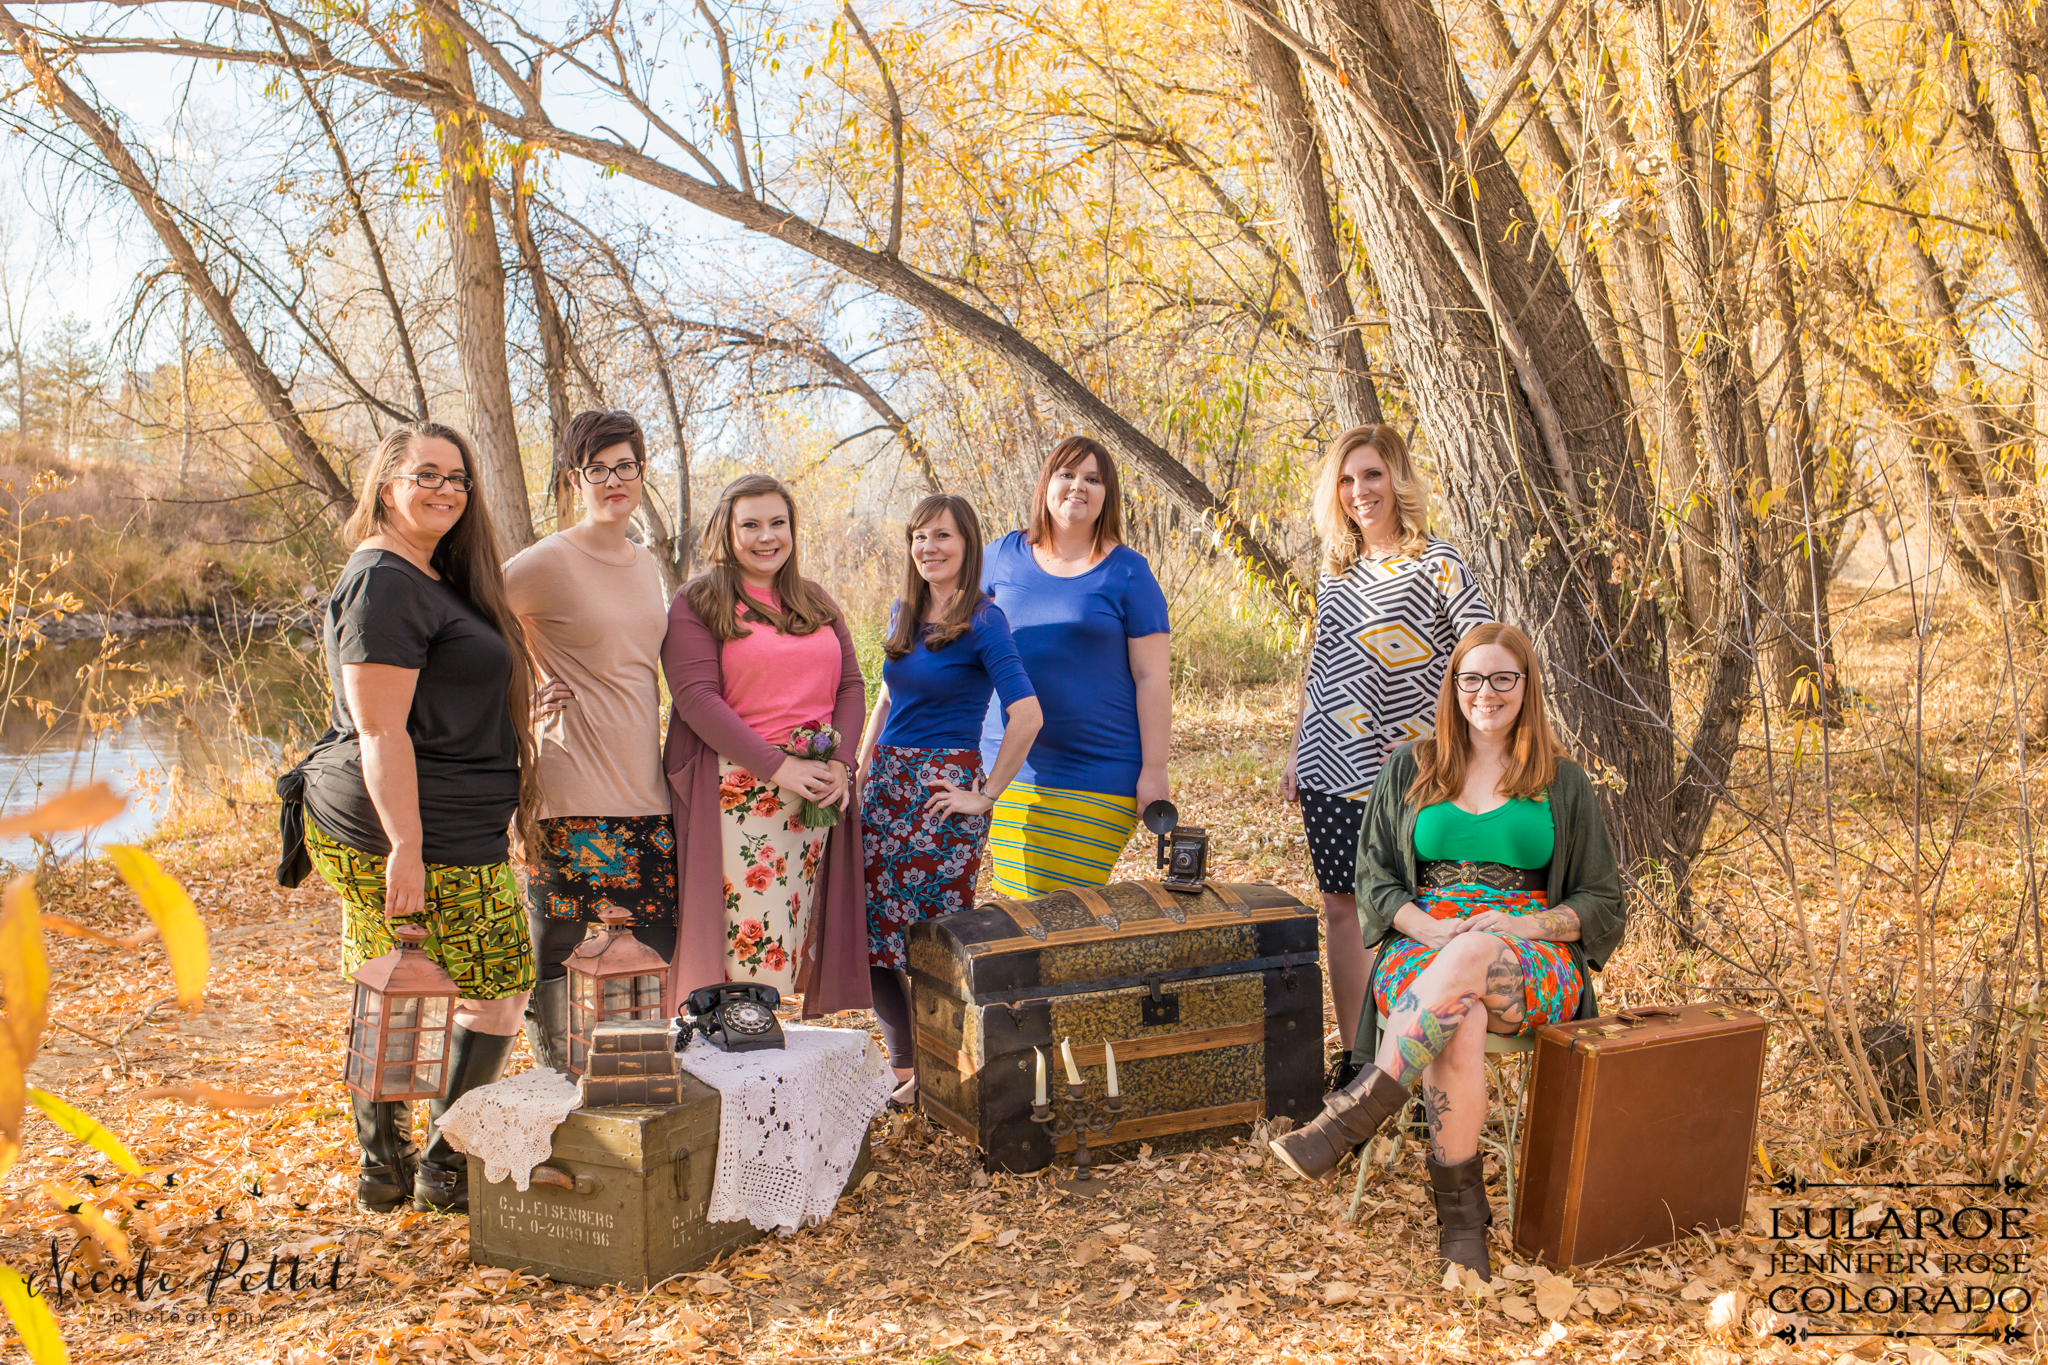 Group of women wearing Lularoe with Jennifer from Colorado clothing at the Poudre River Trail in Fort Collins, Colorado